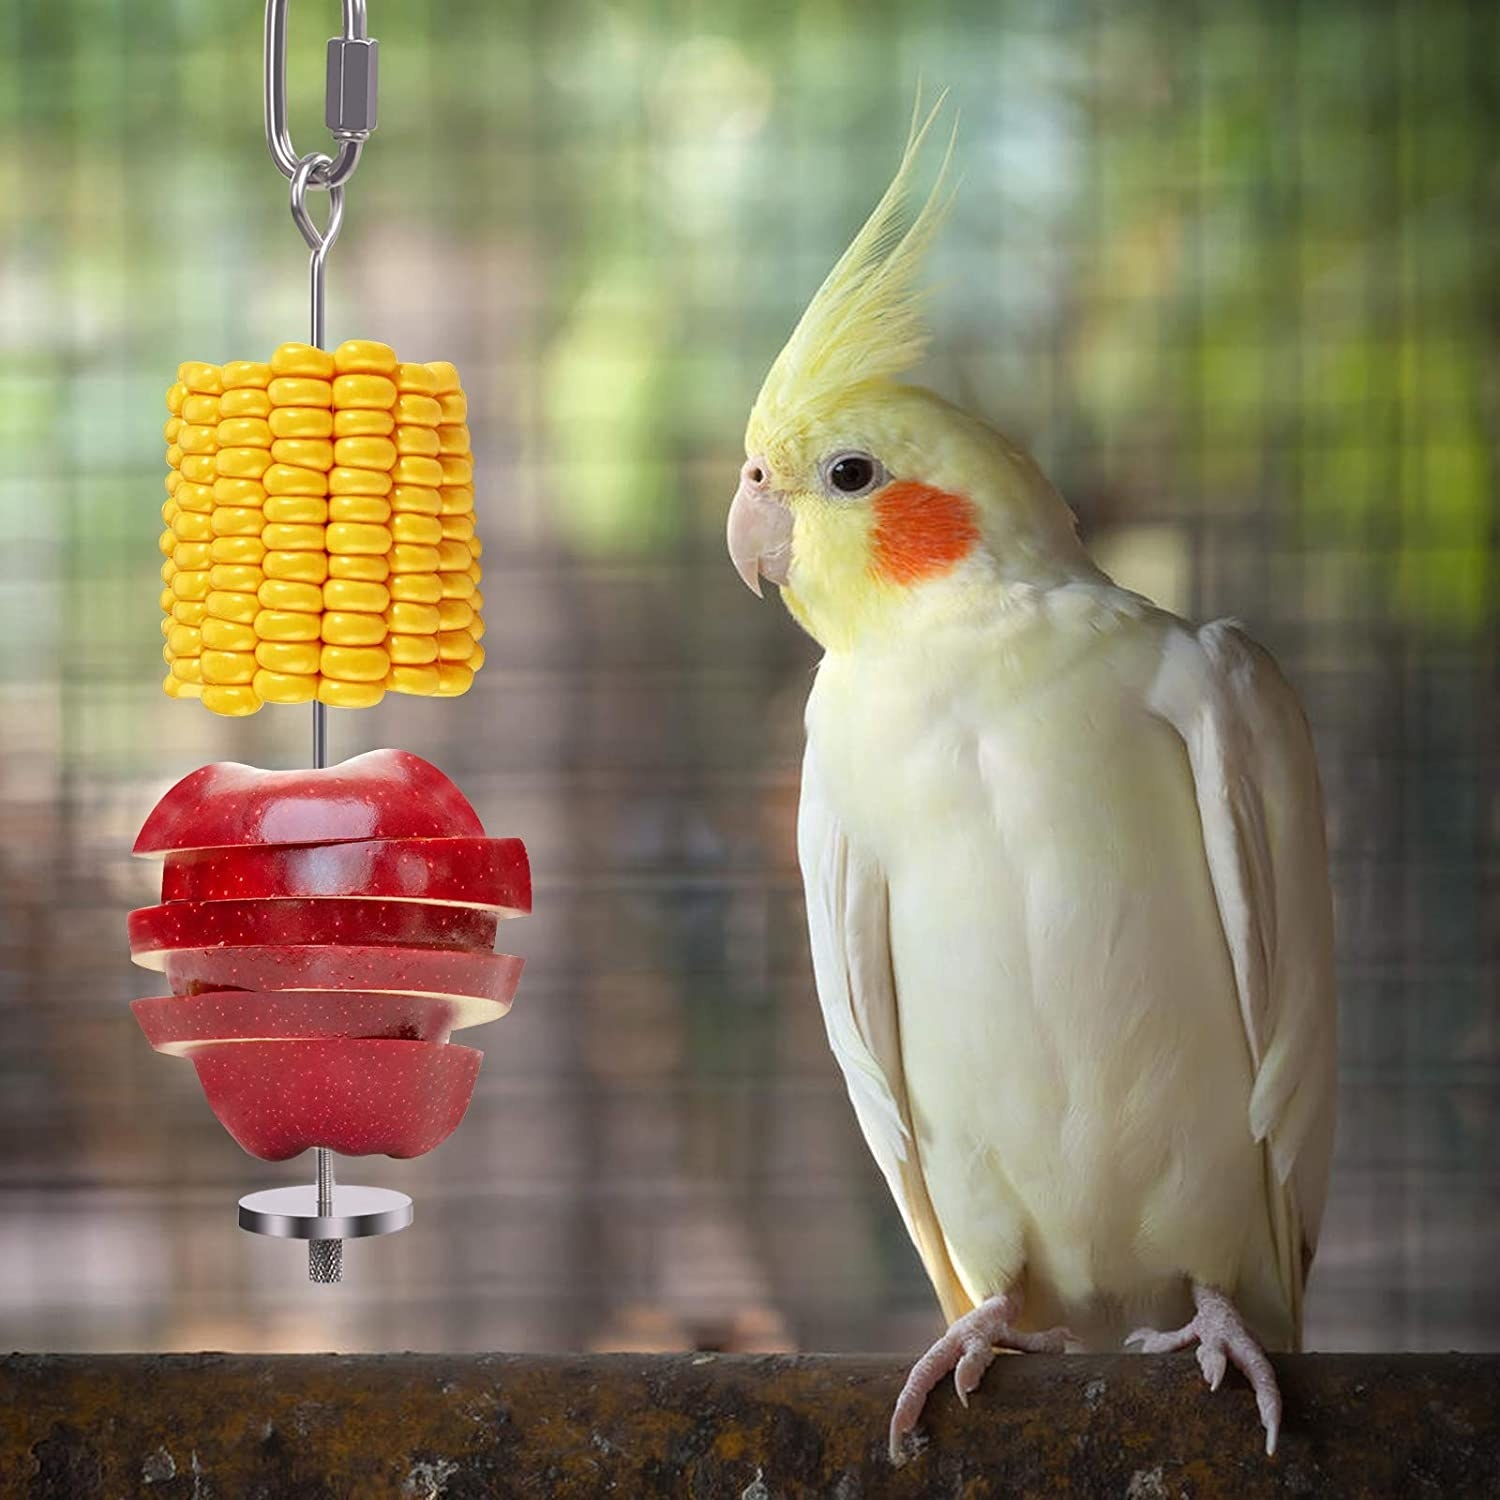 Bird with the tower holding slices of apple and corn